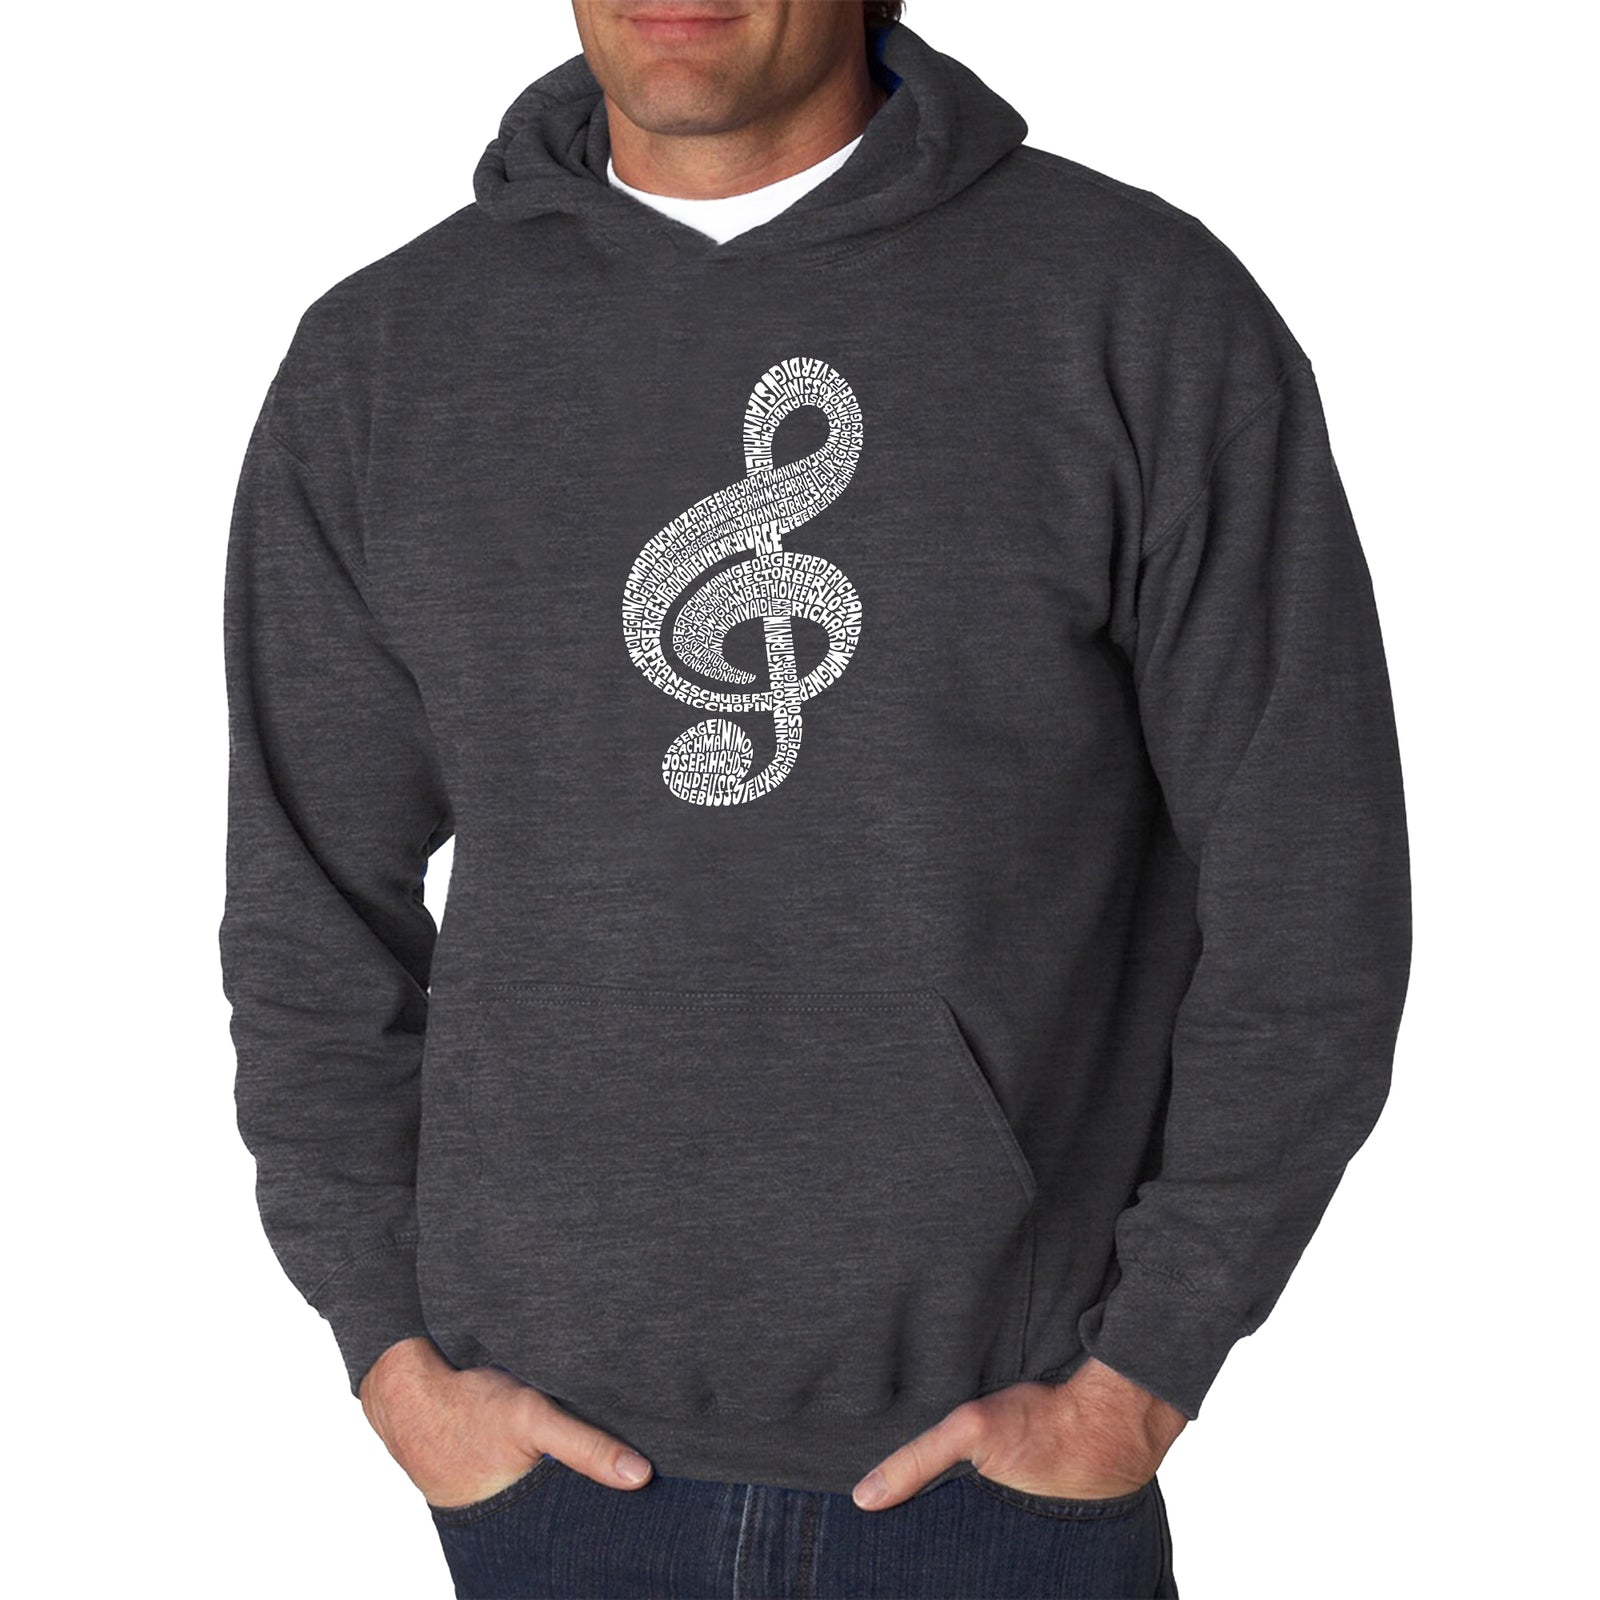 Los Angeles Pop Art Men's Hooded Sweatshirt - Music Note